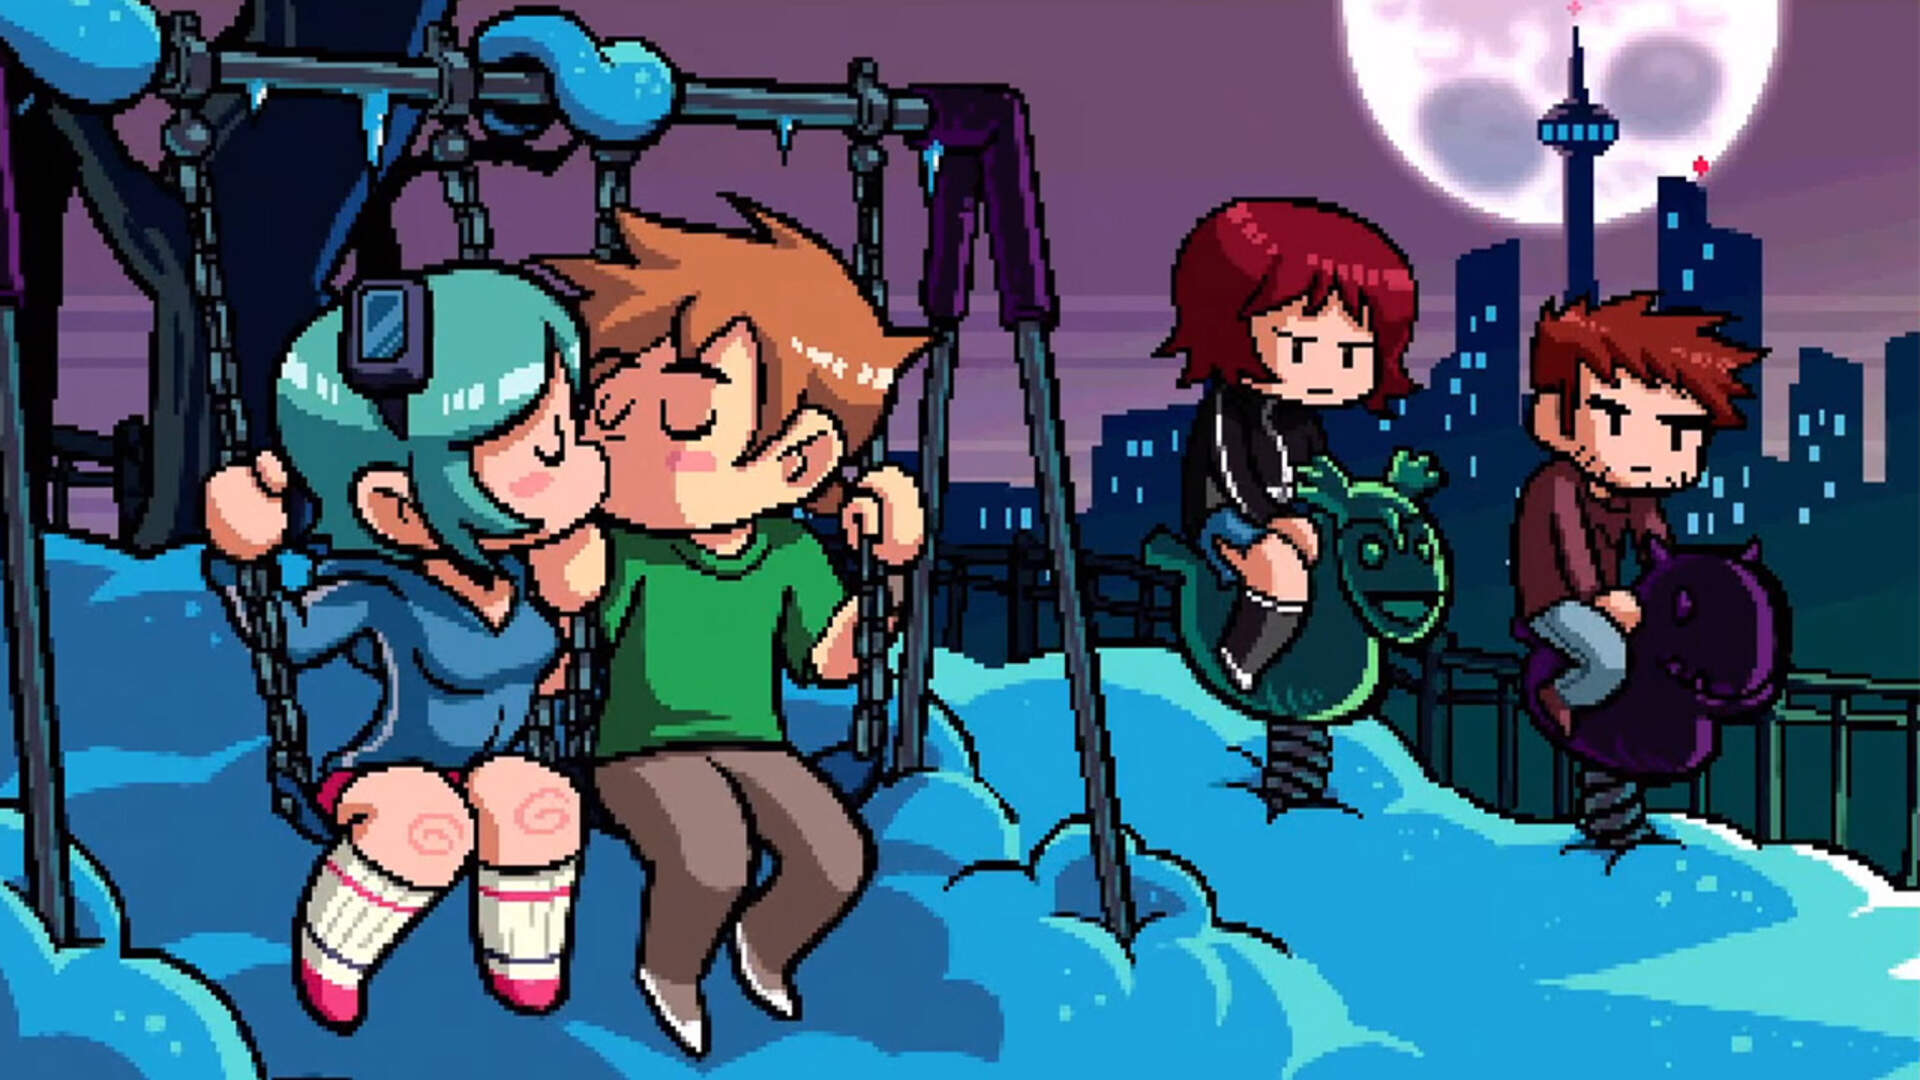 It's Time for Ubisoft to Bring the Scott Pilgrim Game Back